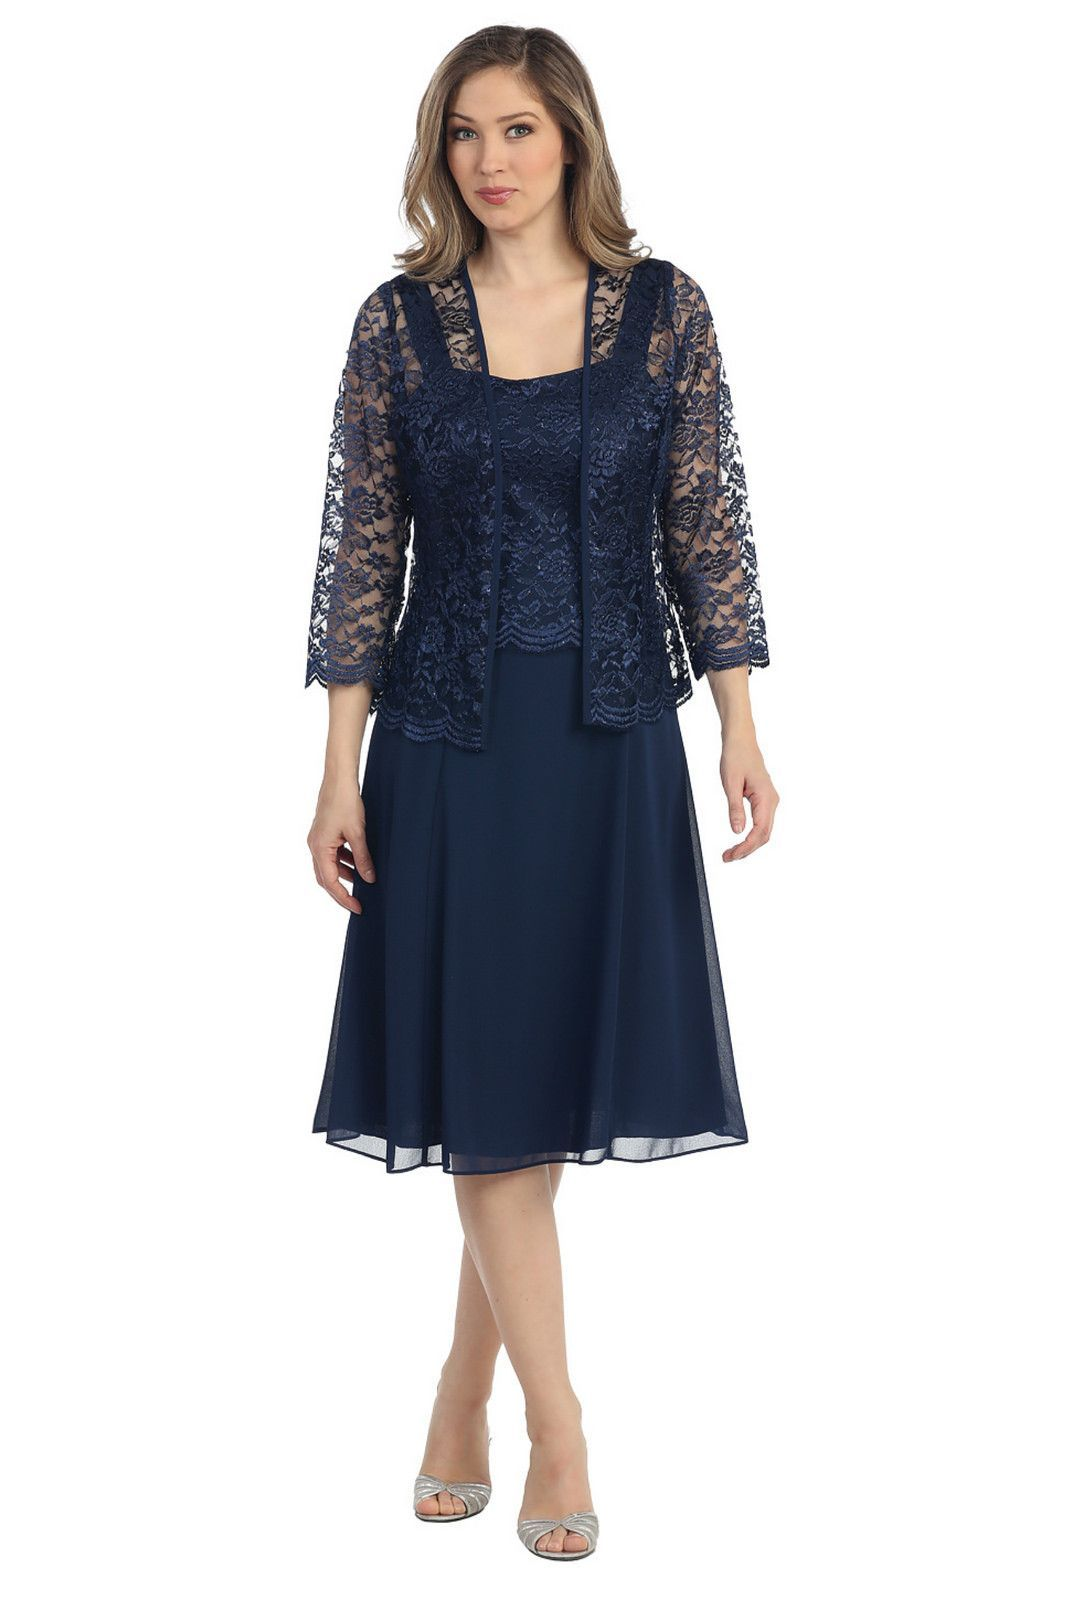 Short Mother of the Bride Dress with Jacket Plus Size Formal Cocktail - The  Dress Outlet - 4 daaf809b8b95